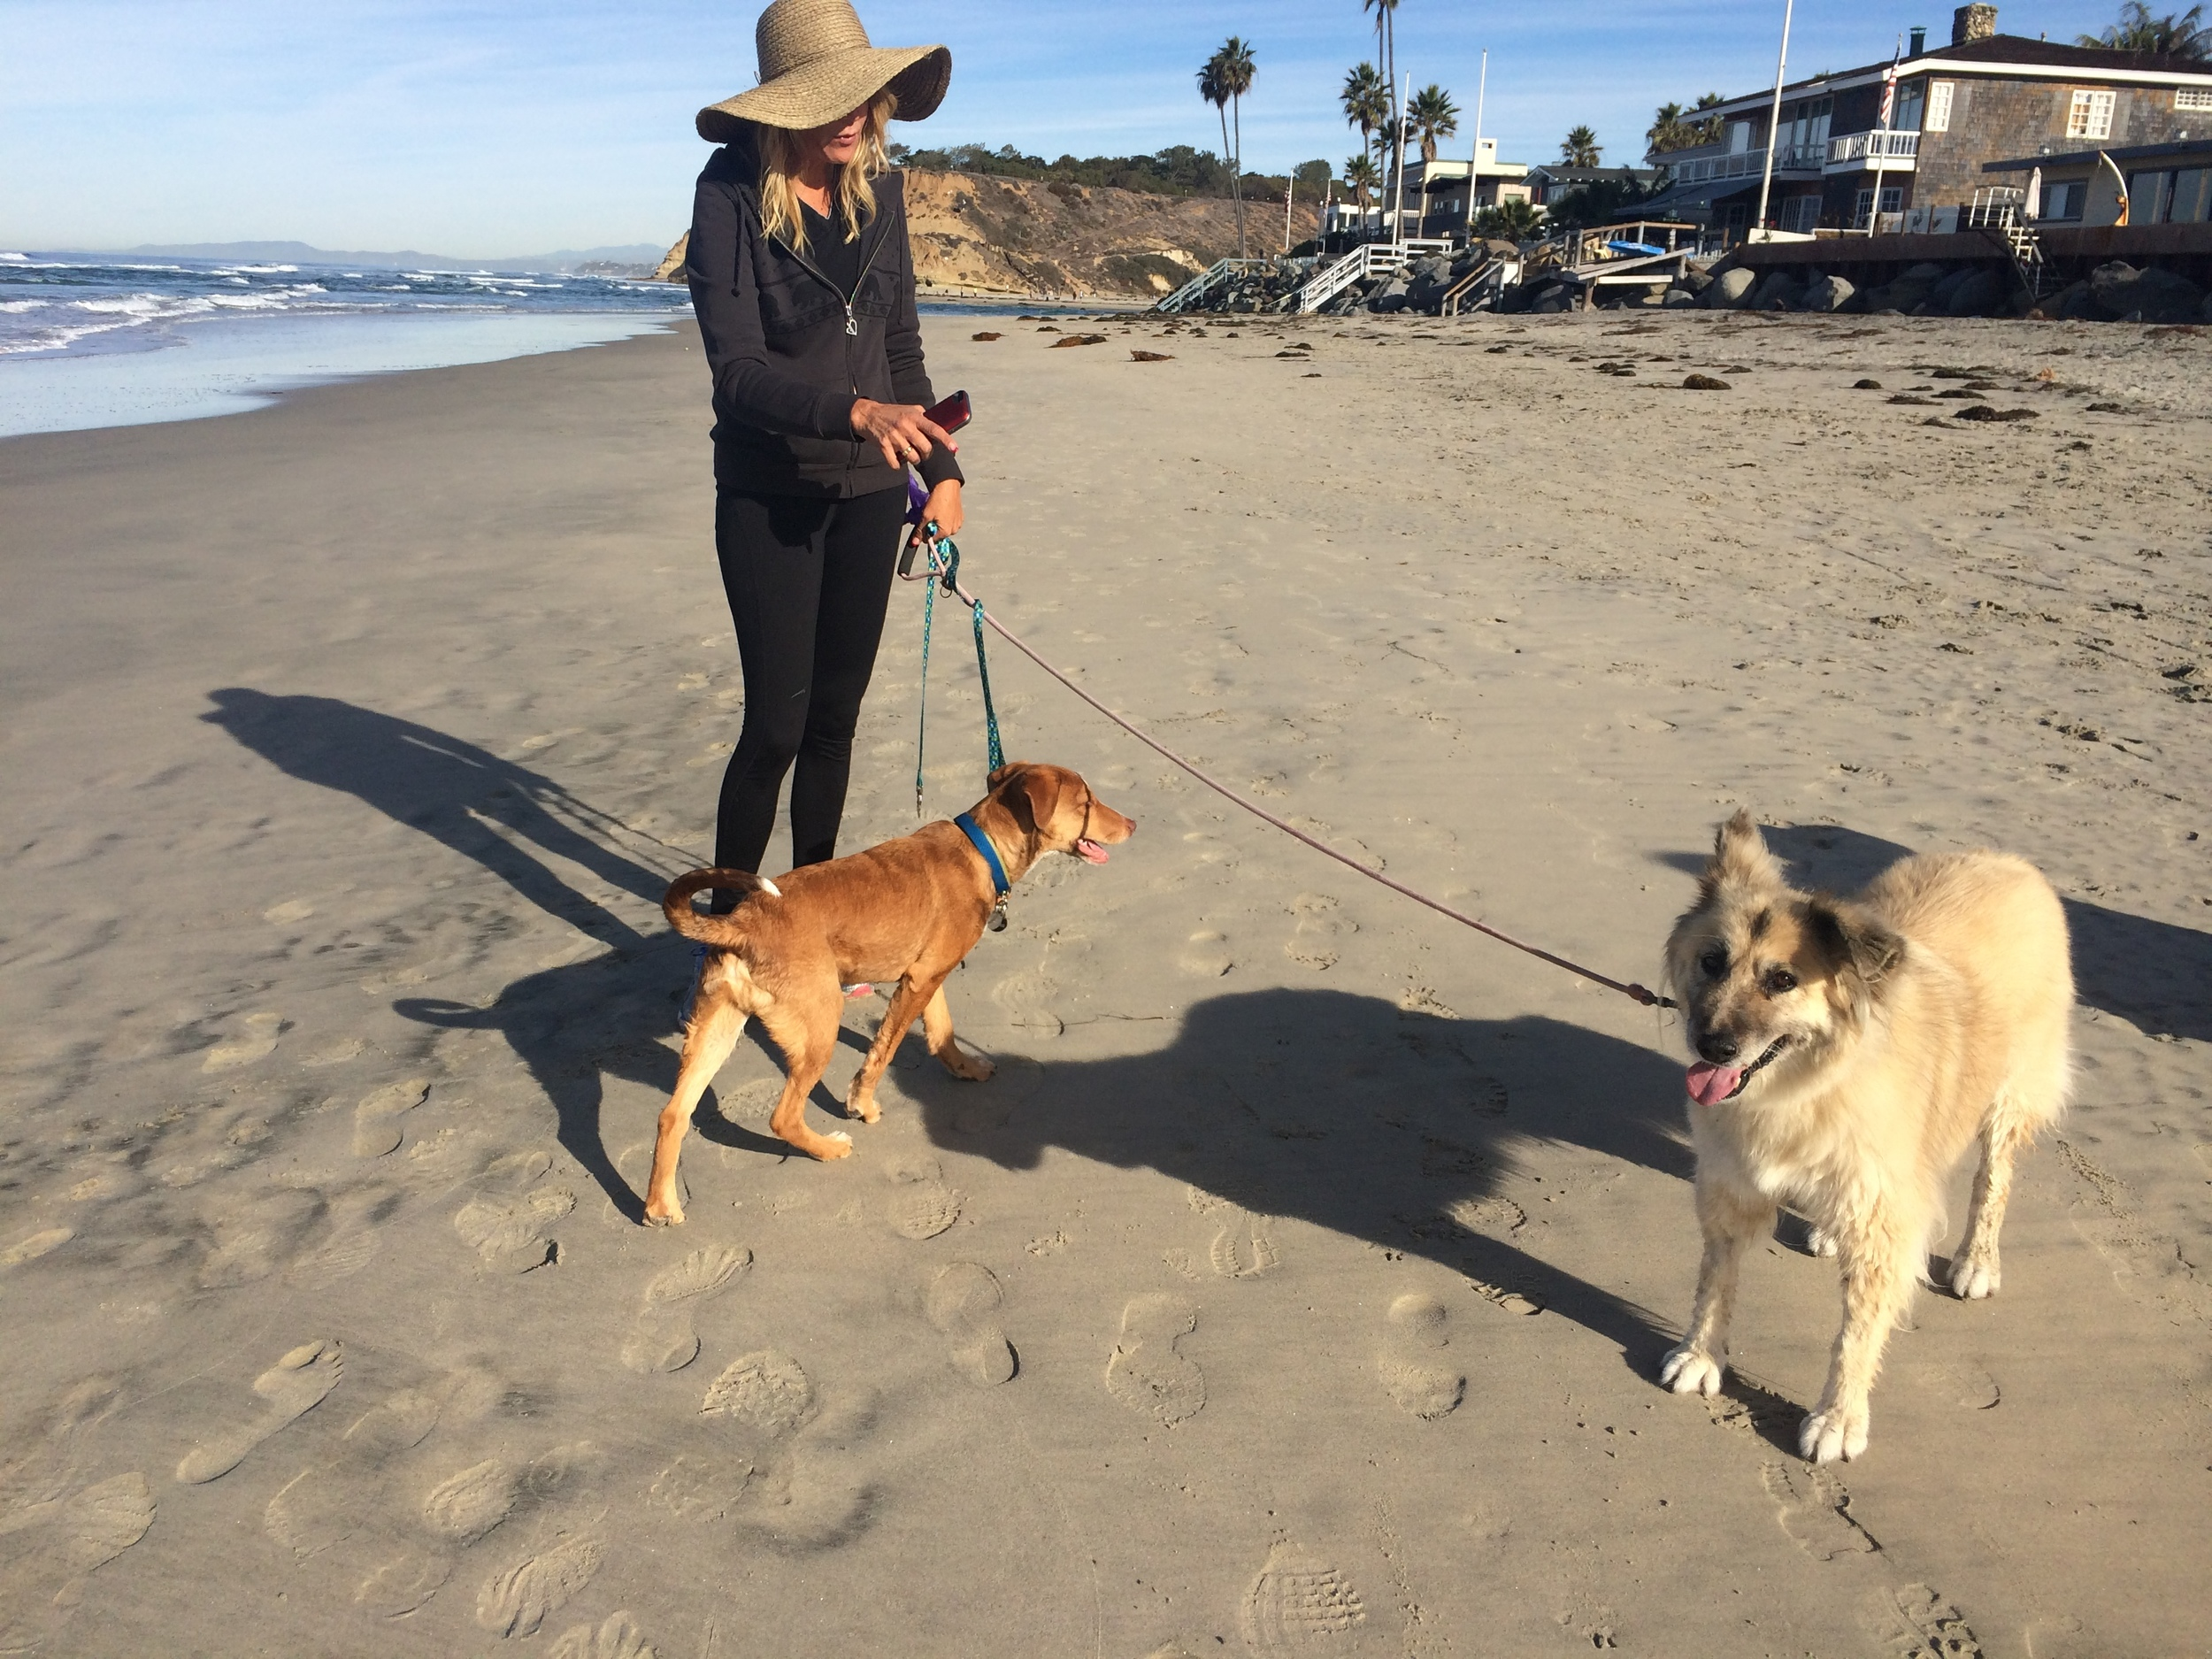 two dogs del mar tric 2.JPG